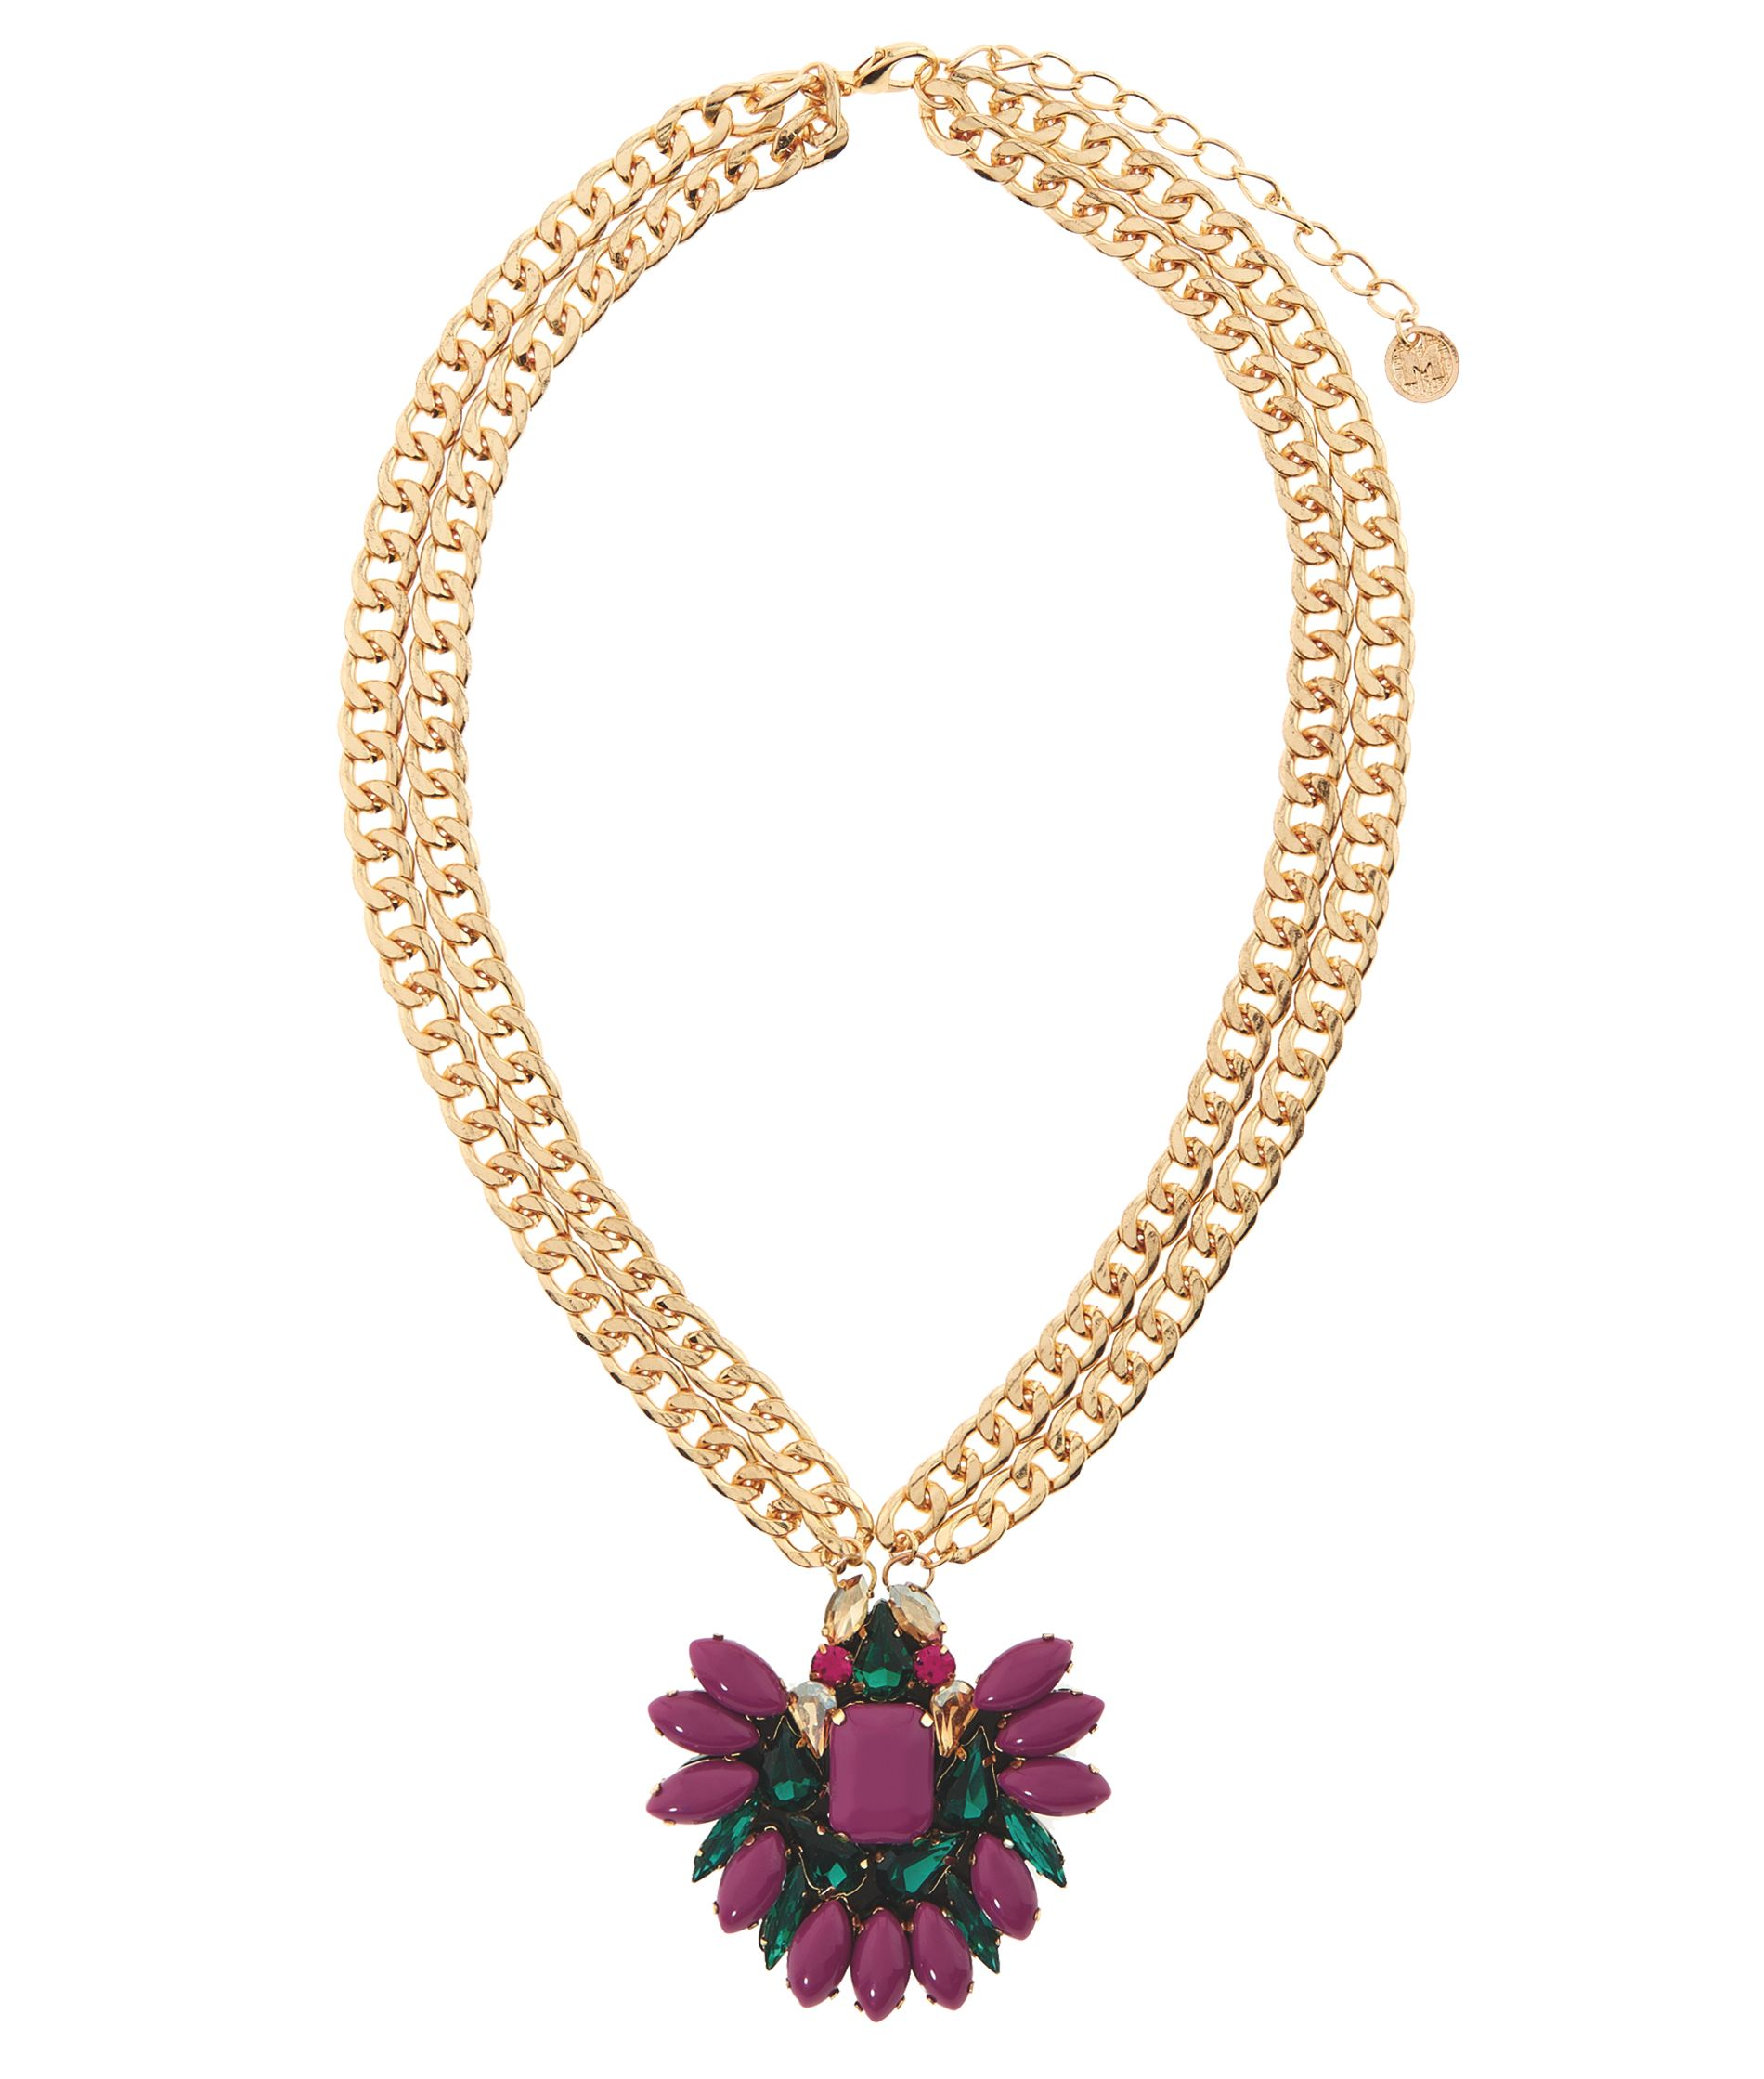 MAIOCCI Collection MAIOCCI Collection Mauka purple hand made necklace, Purple